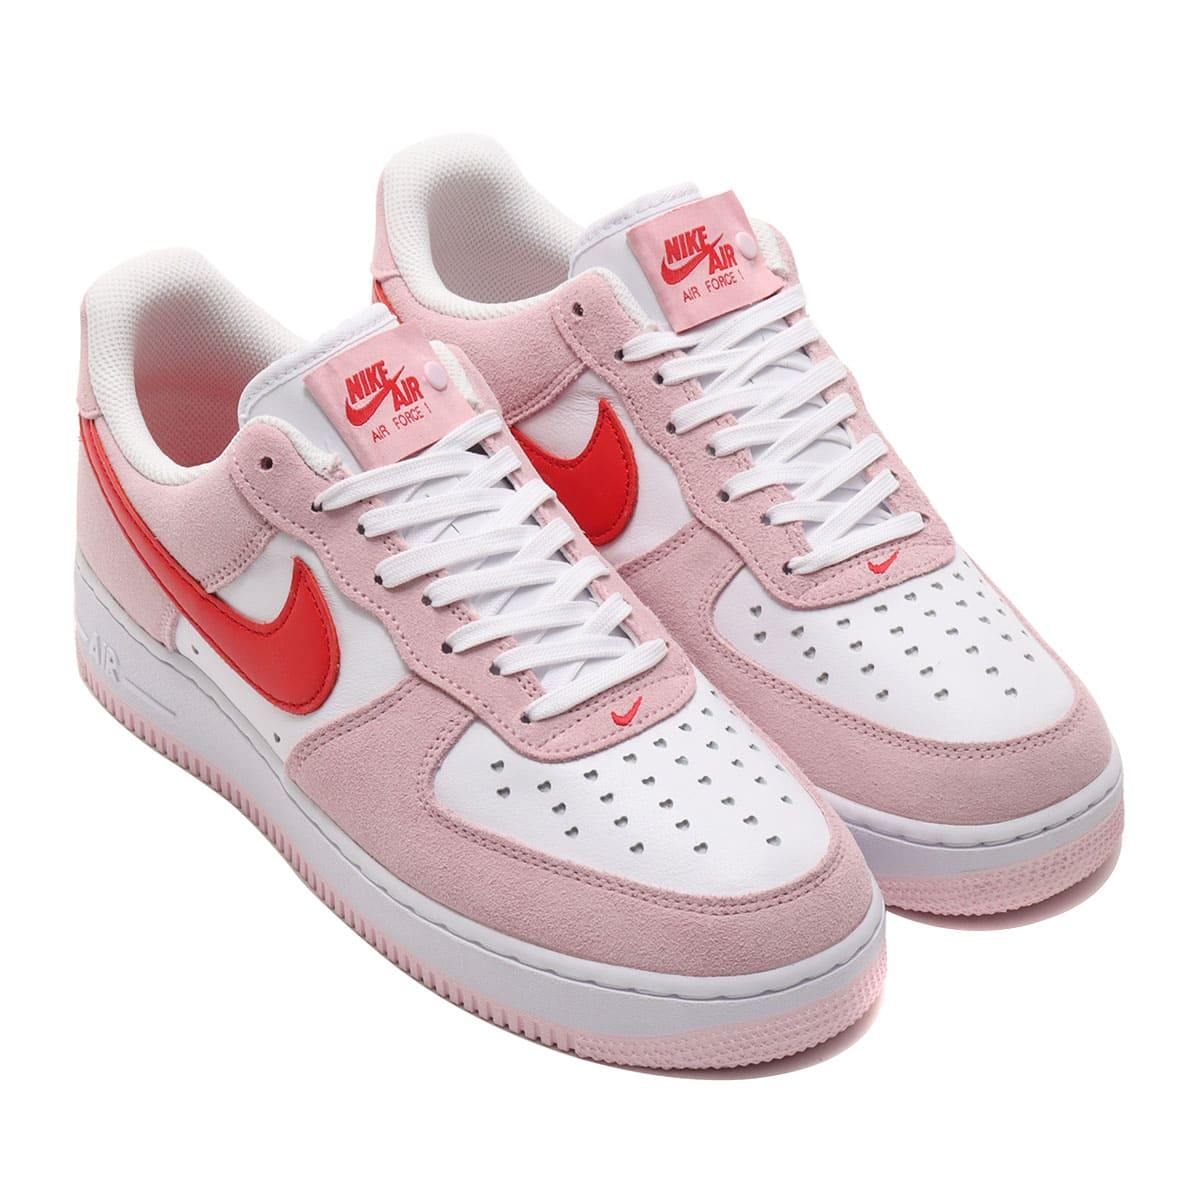 NIKE AIR FORCE 1 '07 QS TULIP PINK/UNIVERSITY RED-WHITE 21SP-S_photo_large